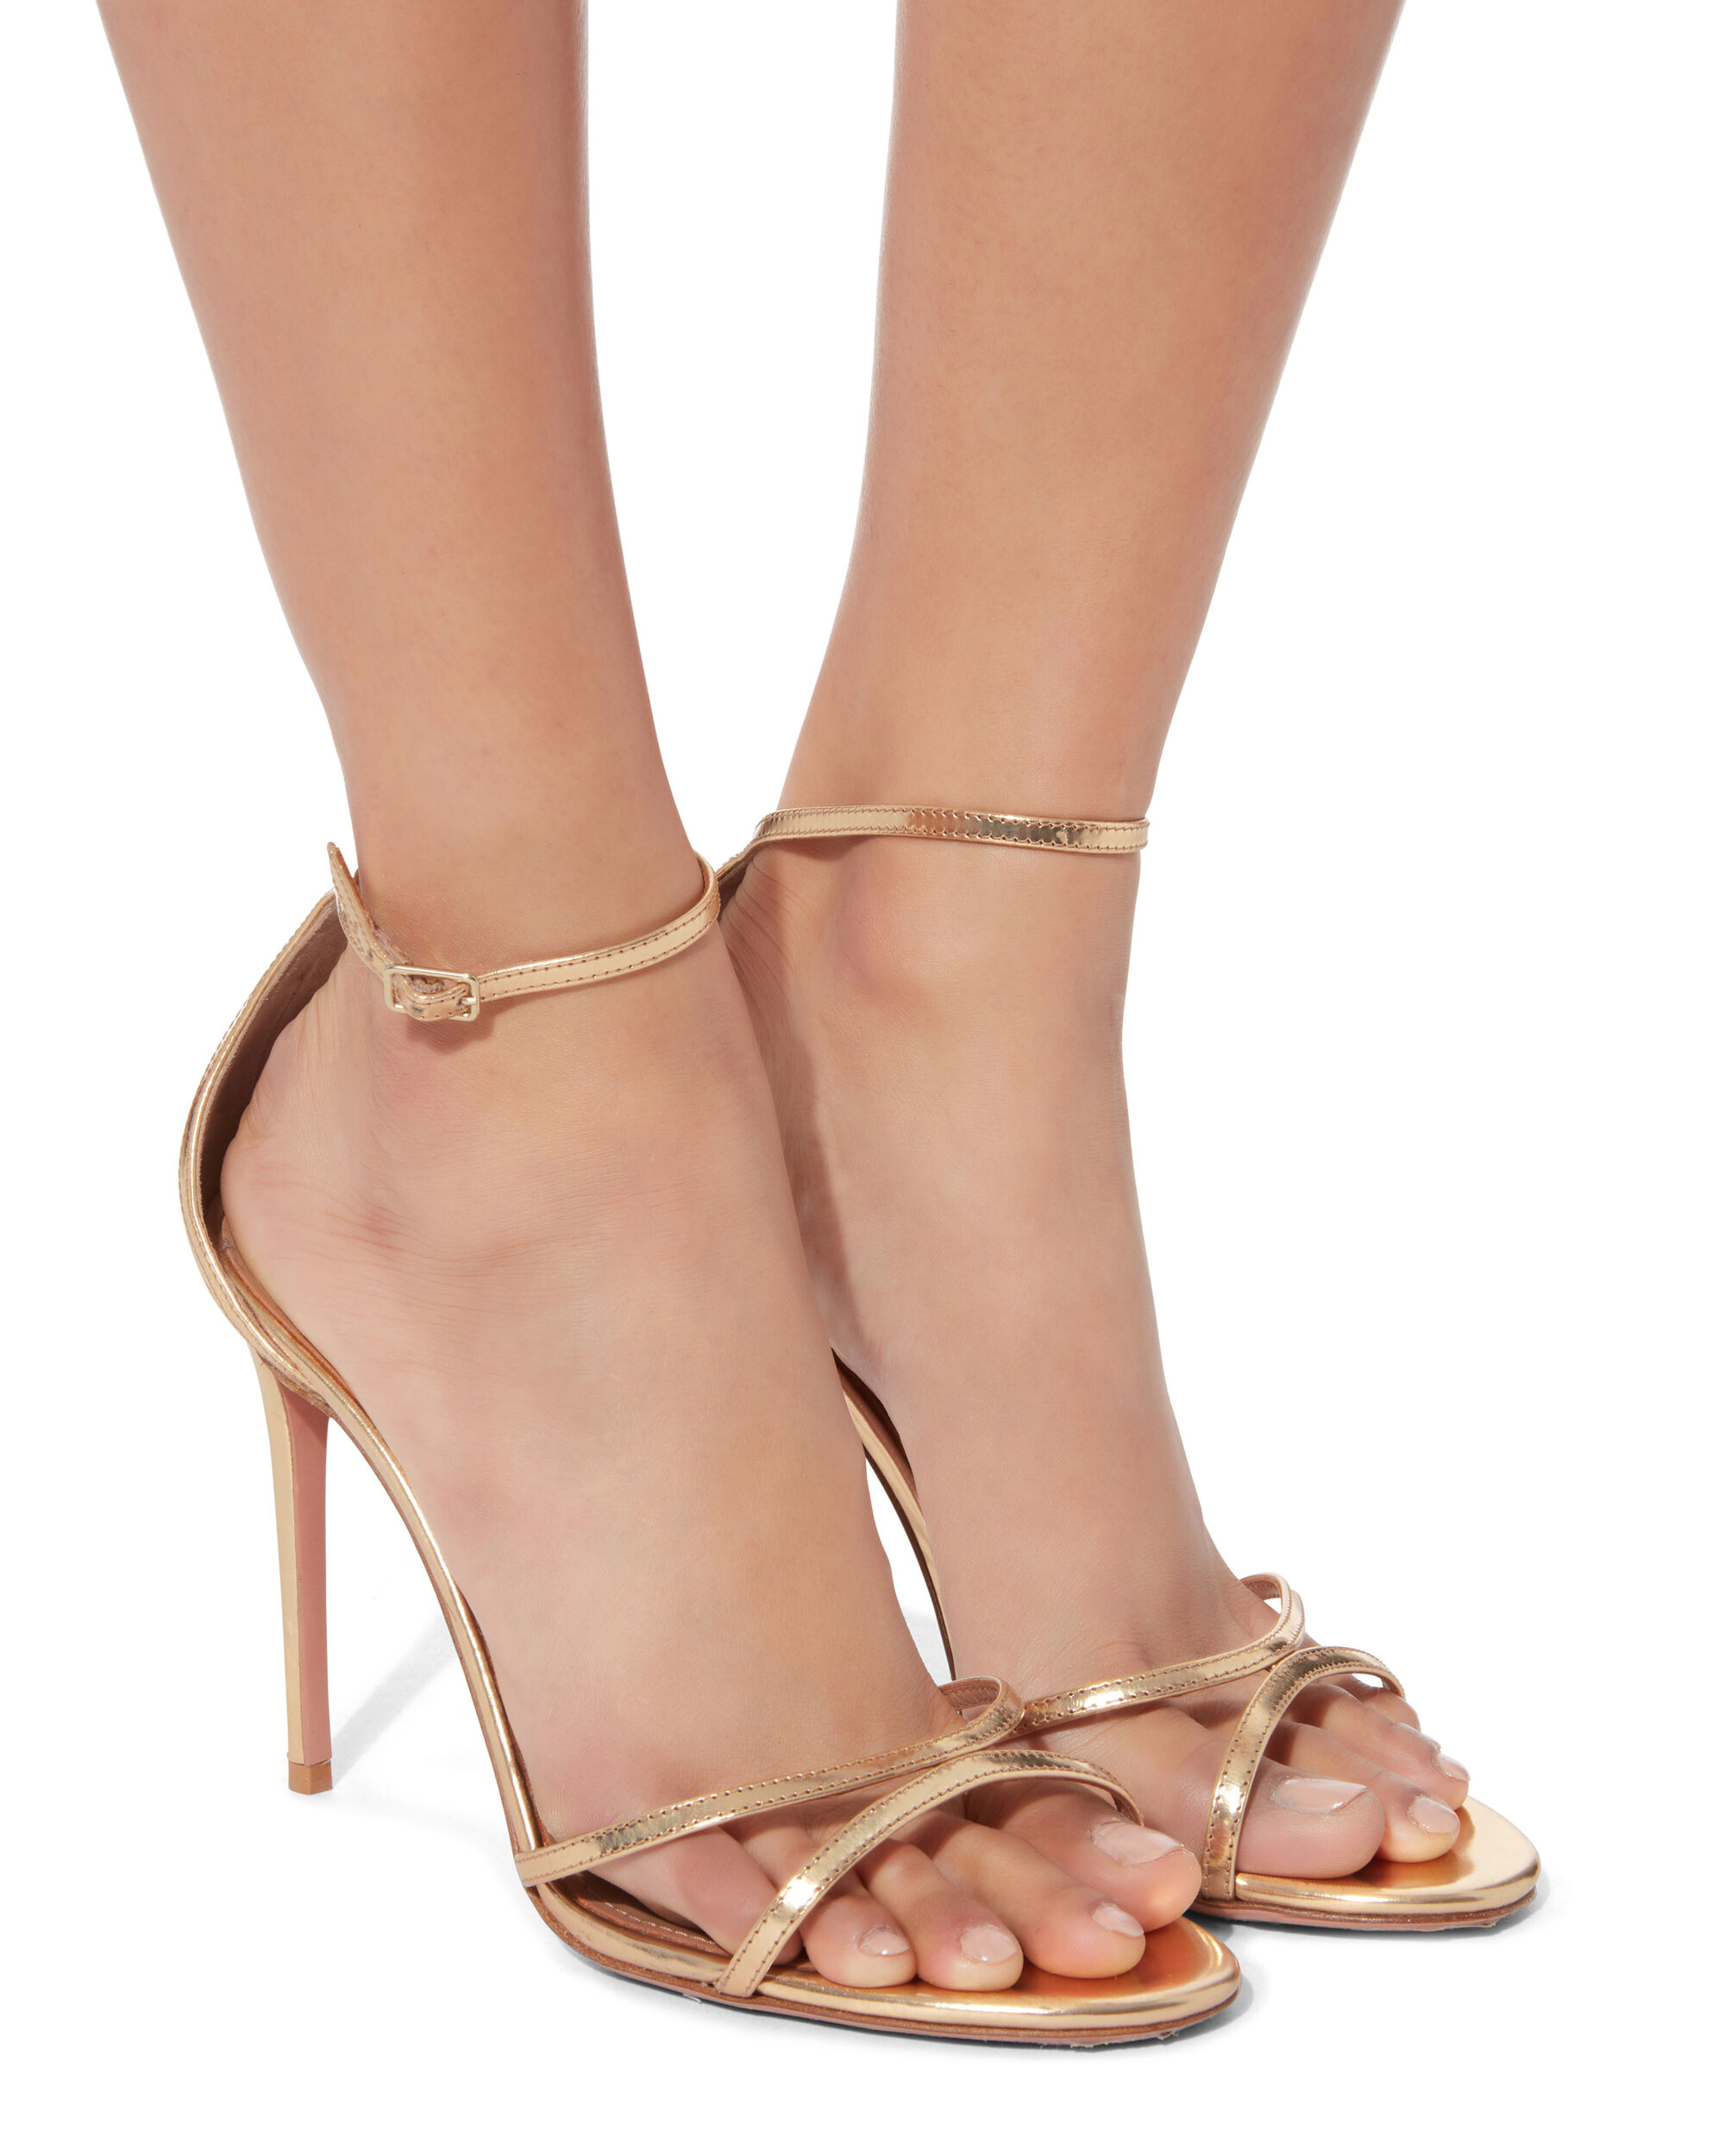 Purist High Sandals, METALLIC, hi-res